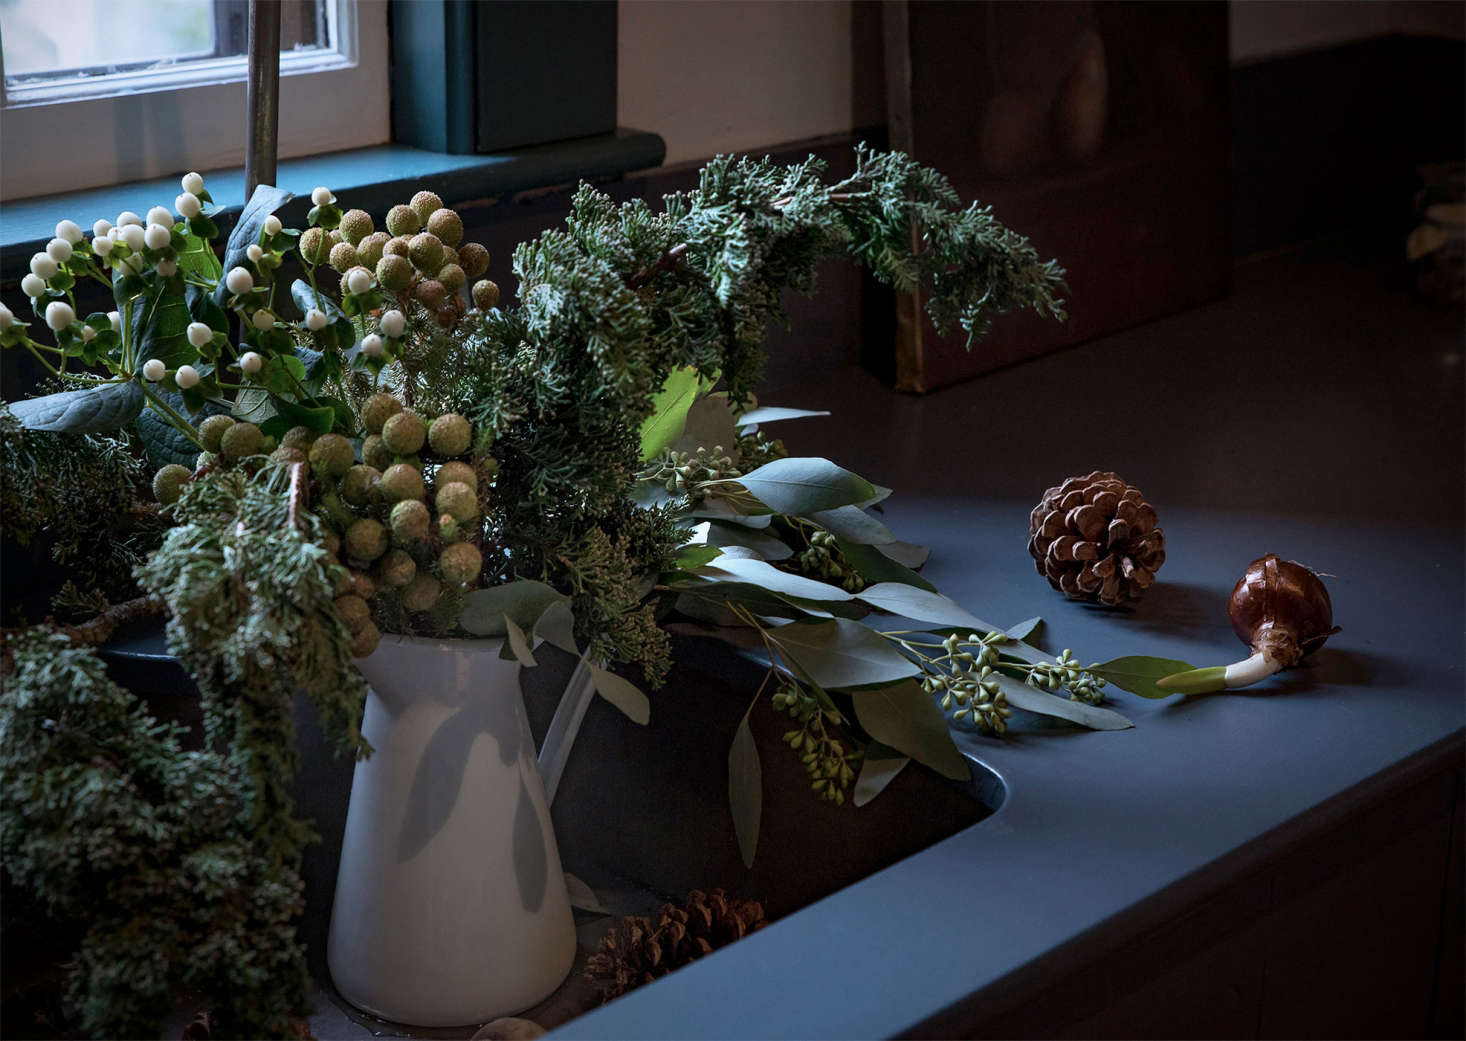 A quick trip outdoors provided the base for a still life with holiday boughs, with foraged juniper evergreens. At the grocery store, I found seeded eucalyptus as well as white Hypericum berries. For a bit of the exotic, I choose Brasilia from my local florist.